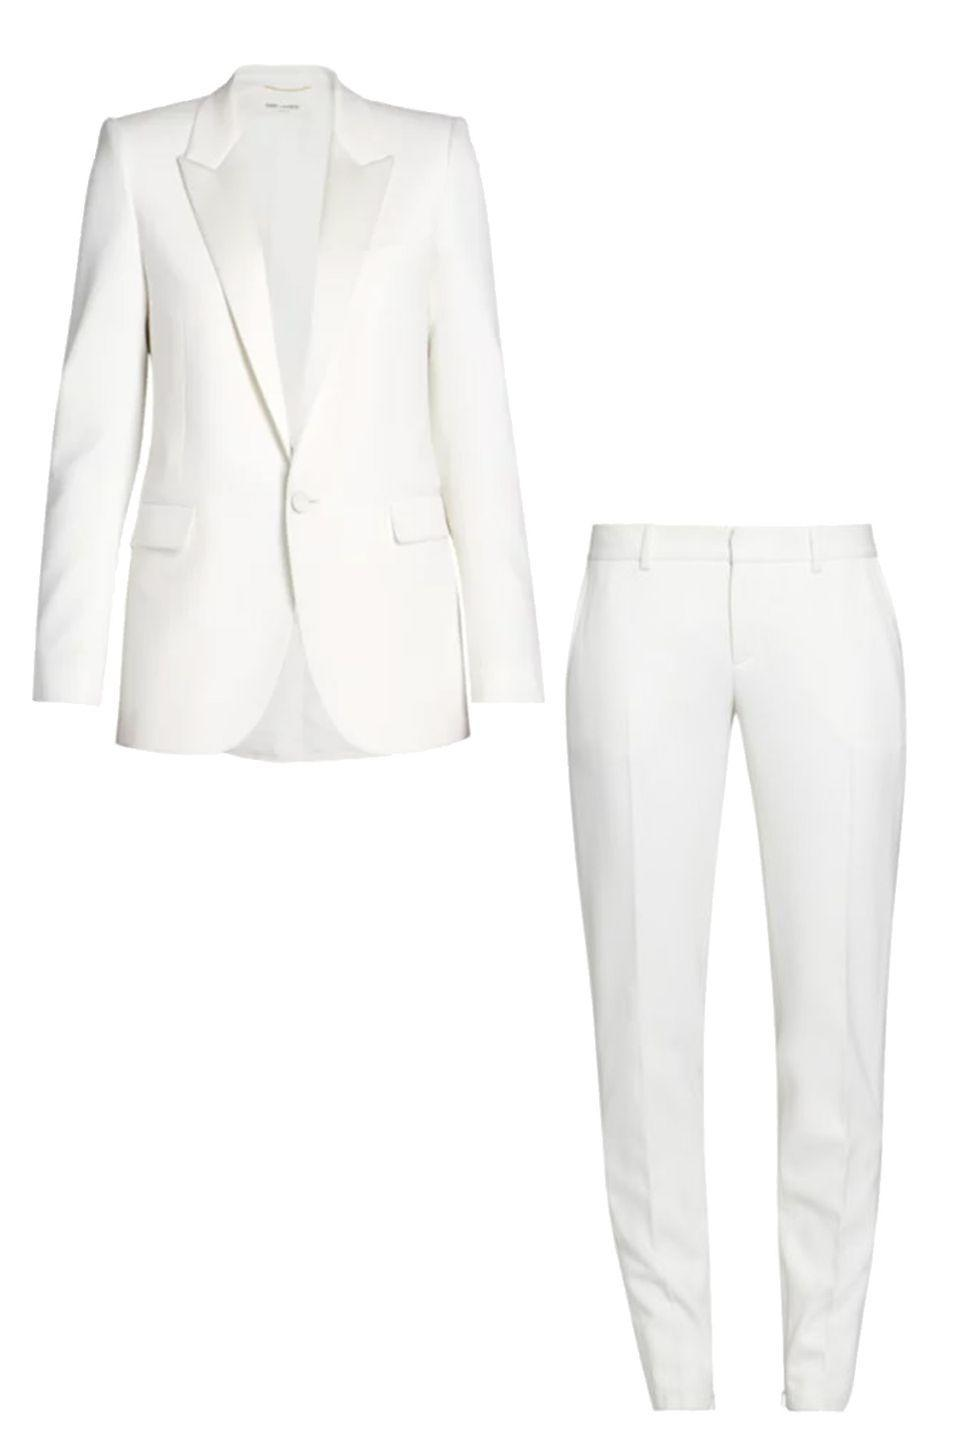 """<p>This stunning take on a classic """"wedding white"""" features incredibly soft silk with a bit of satin shine. The tapered pants are flattering and let you show off a favorite pair of heels. </p><p><a href=""""https://go.skimresources.com?id=74968X1525087&xs=1&url=https%3A%2F%2Fwww.saksfifthavenue.com%2Fsaint-laurent-wool-skinny-pants%2Fproduct%2F0400012804410%3FclickType%3DPRODUCT_RECOMMENDATIONS"""" rel=""""nofollow noopener"""" target=""""_blank"""" data-ylk=""""slk:Saint Laurent Blazer"""" class=""""link rapid-noclick-resp""""><br>Saint Laurent Blazer</a><a href=""""https://go.skimresources.com?id=74968X1525087&xs=1&url=https%3A%2F%2Fwww.saksfifthavenue.com%2Fsaint-laurent-single-button-wool-jacket%2Fproduct%2F0400012804234%3FFOLDER%253C%253Efolder_id%3D2534374306646244%26R%3D190617553201%26P_name%3DSaint%2BLaurent%26N%3D306646244%2B4294929615%2B4294929614%2B4294929610%2B4294929600%2B4294929616%26bmUID%3DniiK_MZ"""" rel=""""nofollow noopener"""" target=""""_blank"""" data-ylk=""""slk:Saint Laurent Pant"""" class=""""link rapid-noclick-resp""""><br>Saint Laurent Pant</a></p>"""